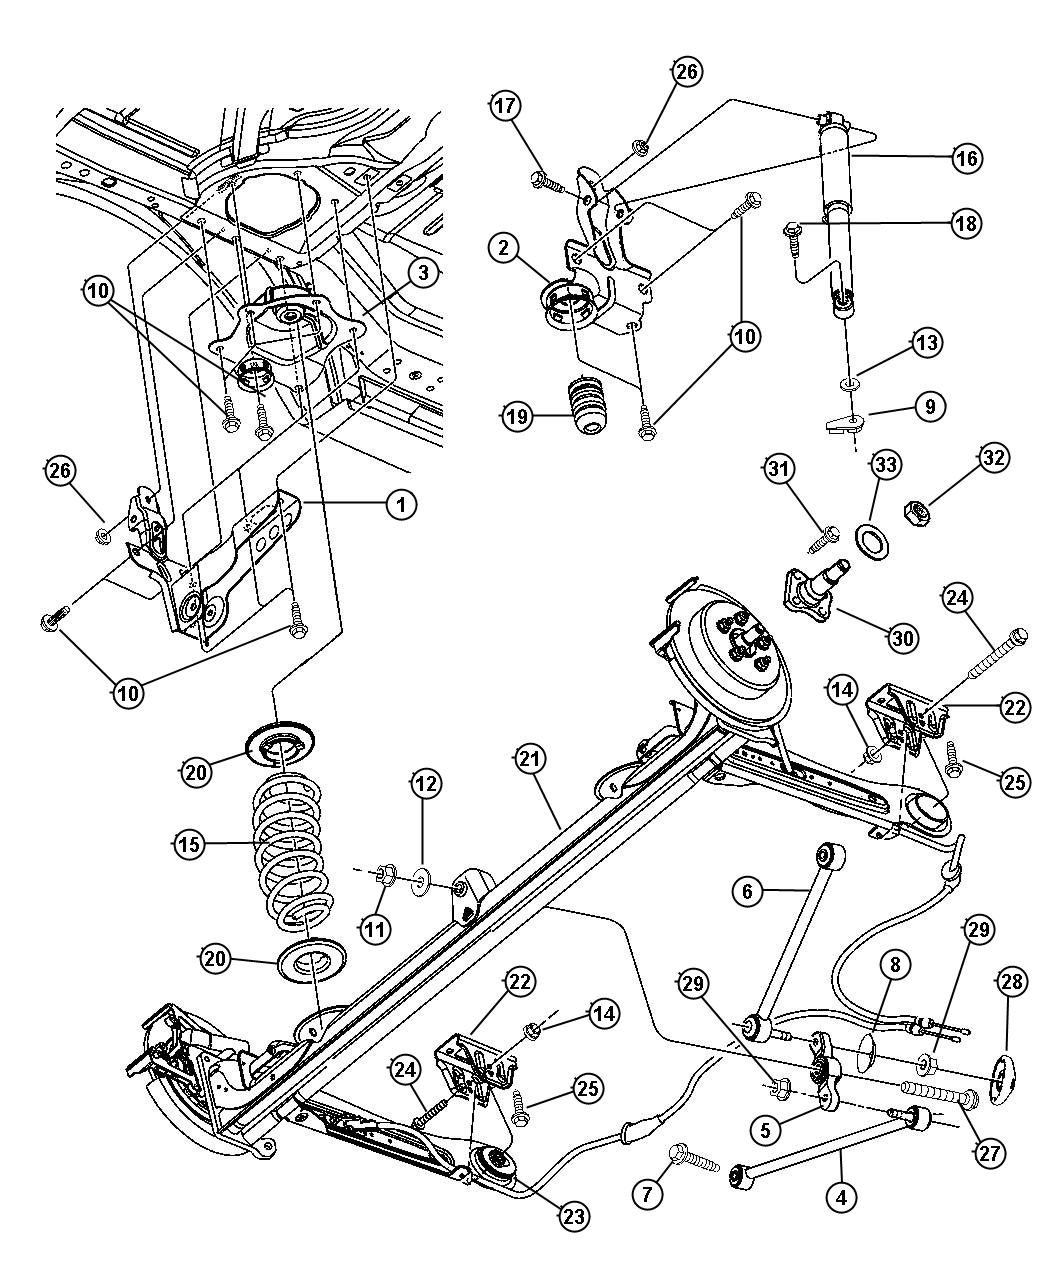 2001 pt cruiser rear suspension diagram